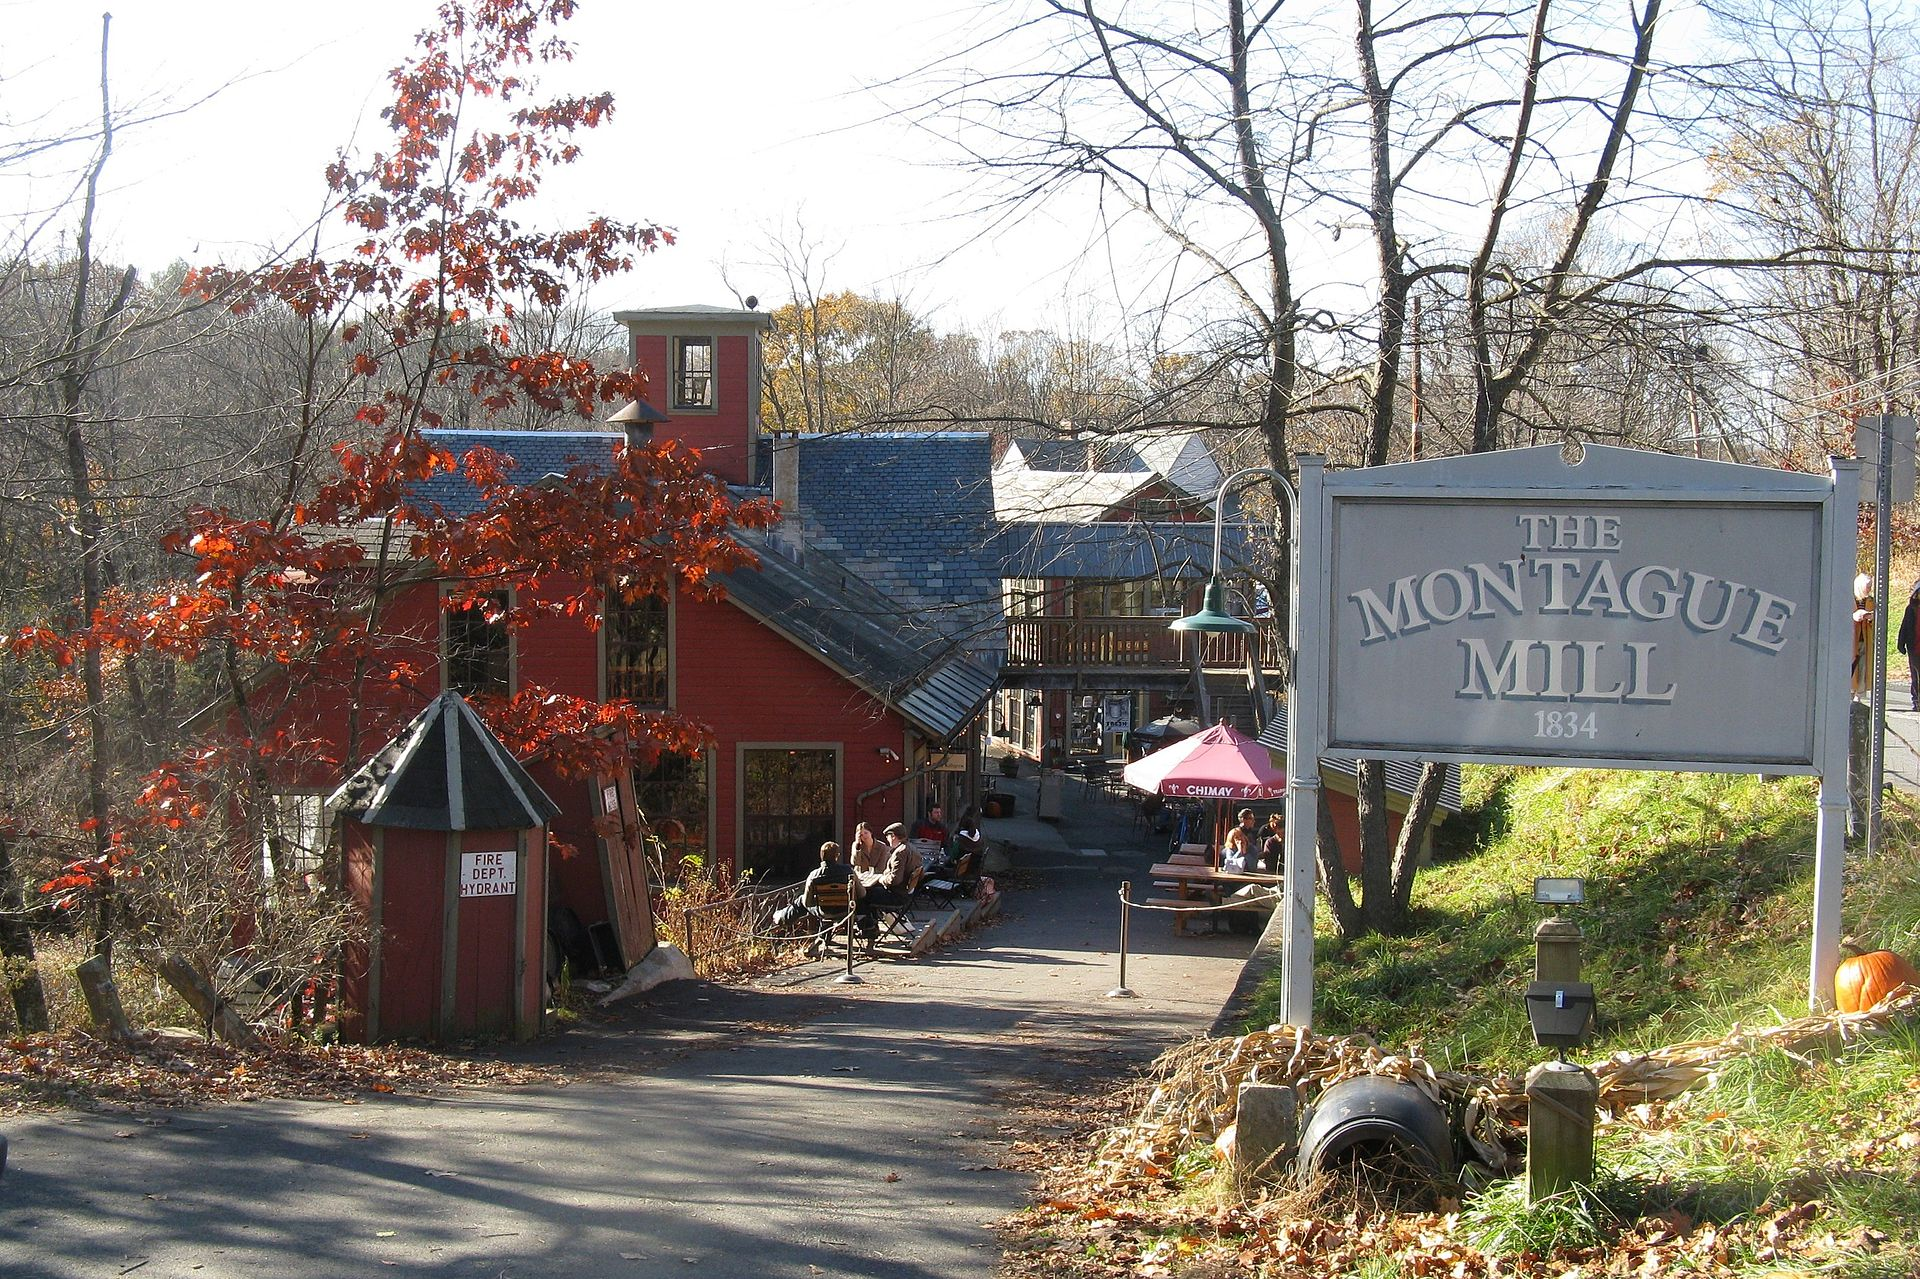 Montague_Book_Mill,_Montague_MA